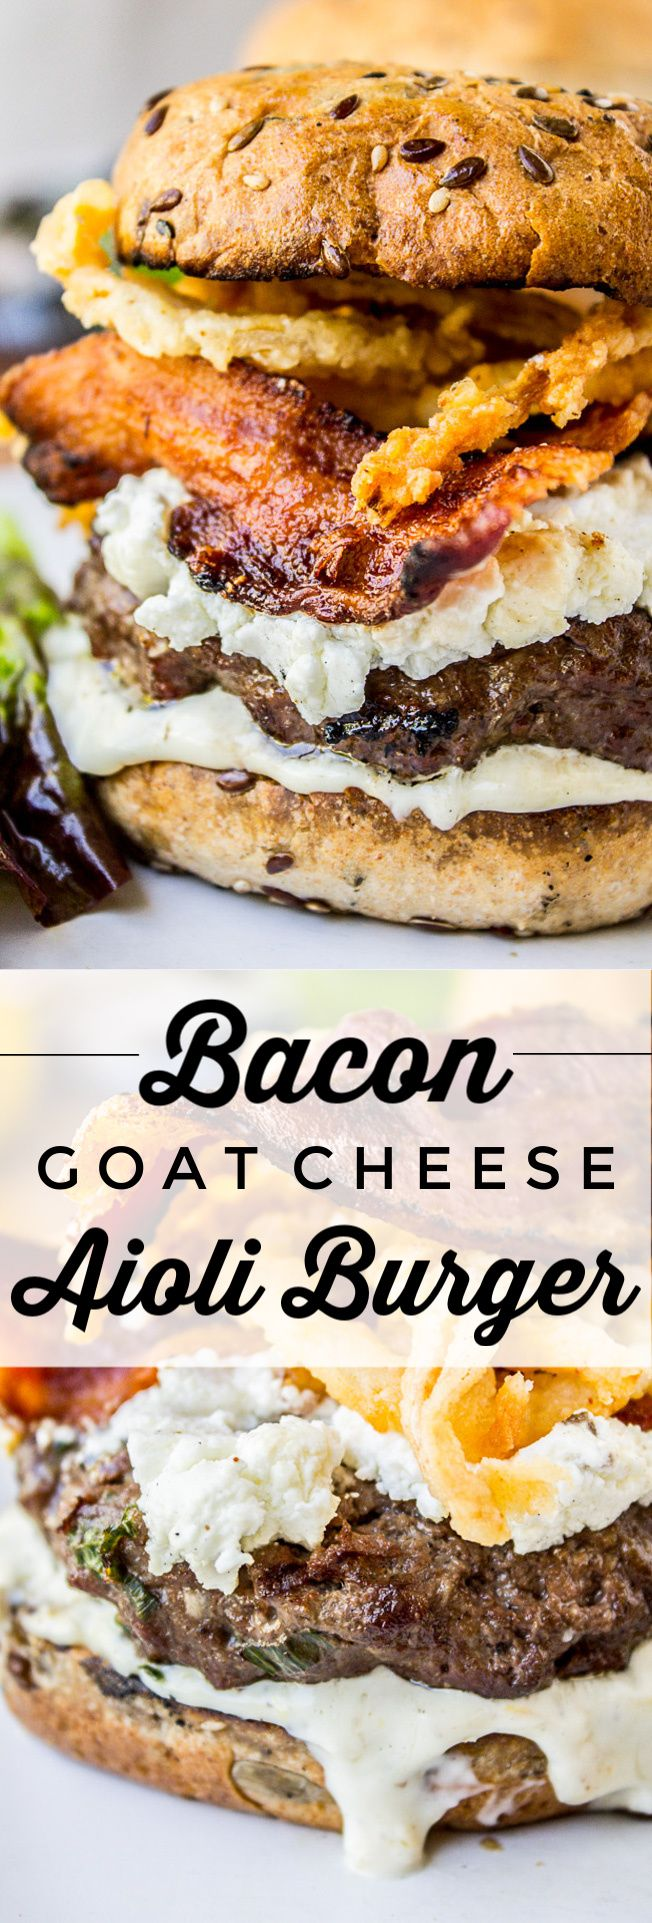 Bacon and Goat Cheese Aioli Burger with Crispy Onions